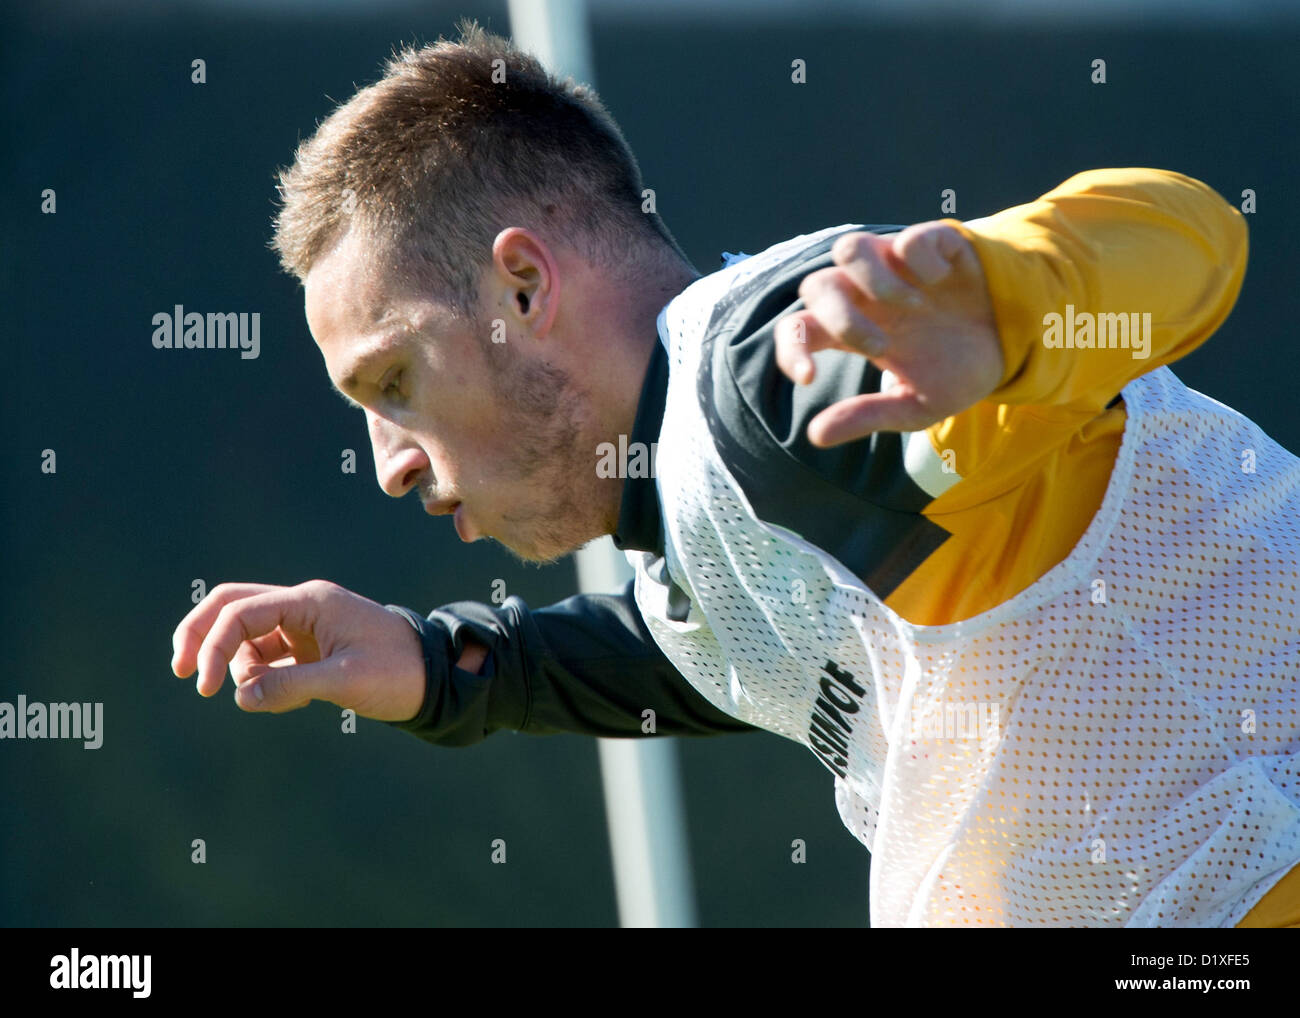 Werder Bremen's Marko Arnautovic practices during the winter training camp in Belek, Turkey, 07 January 2013. PHOTO: Stock Photo